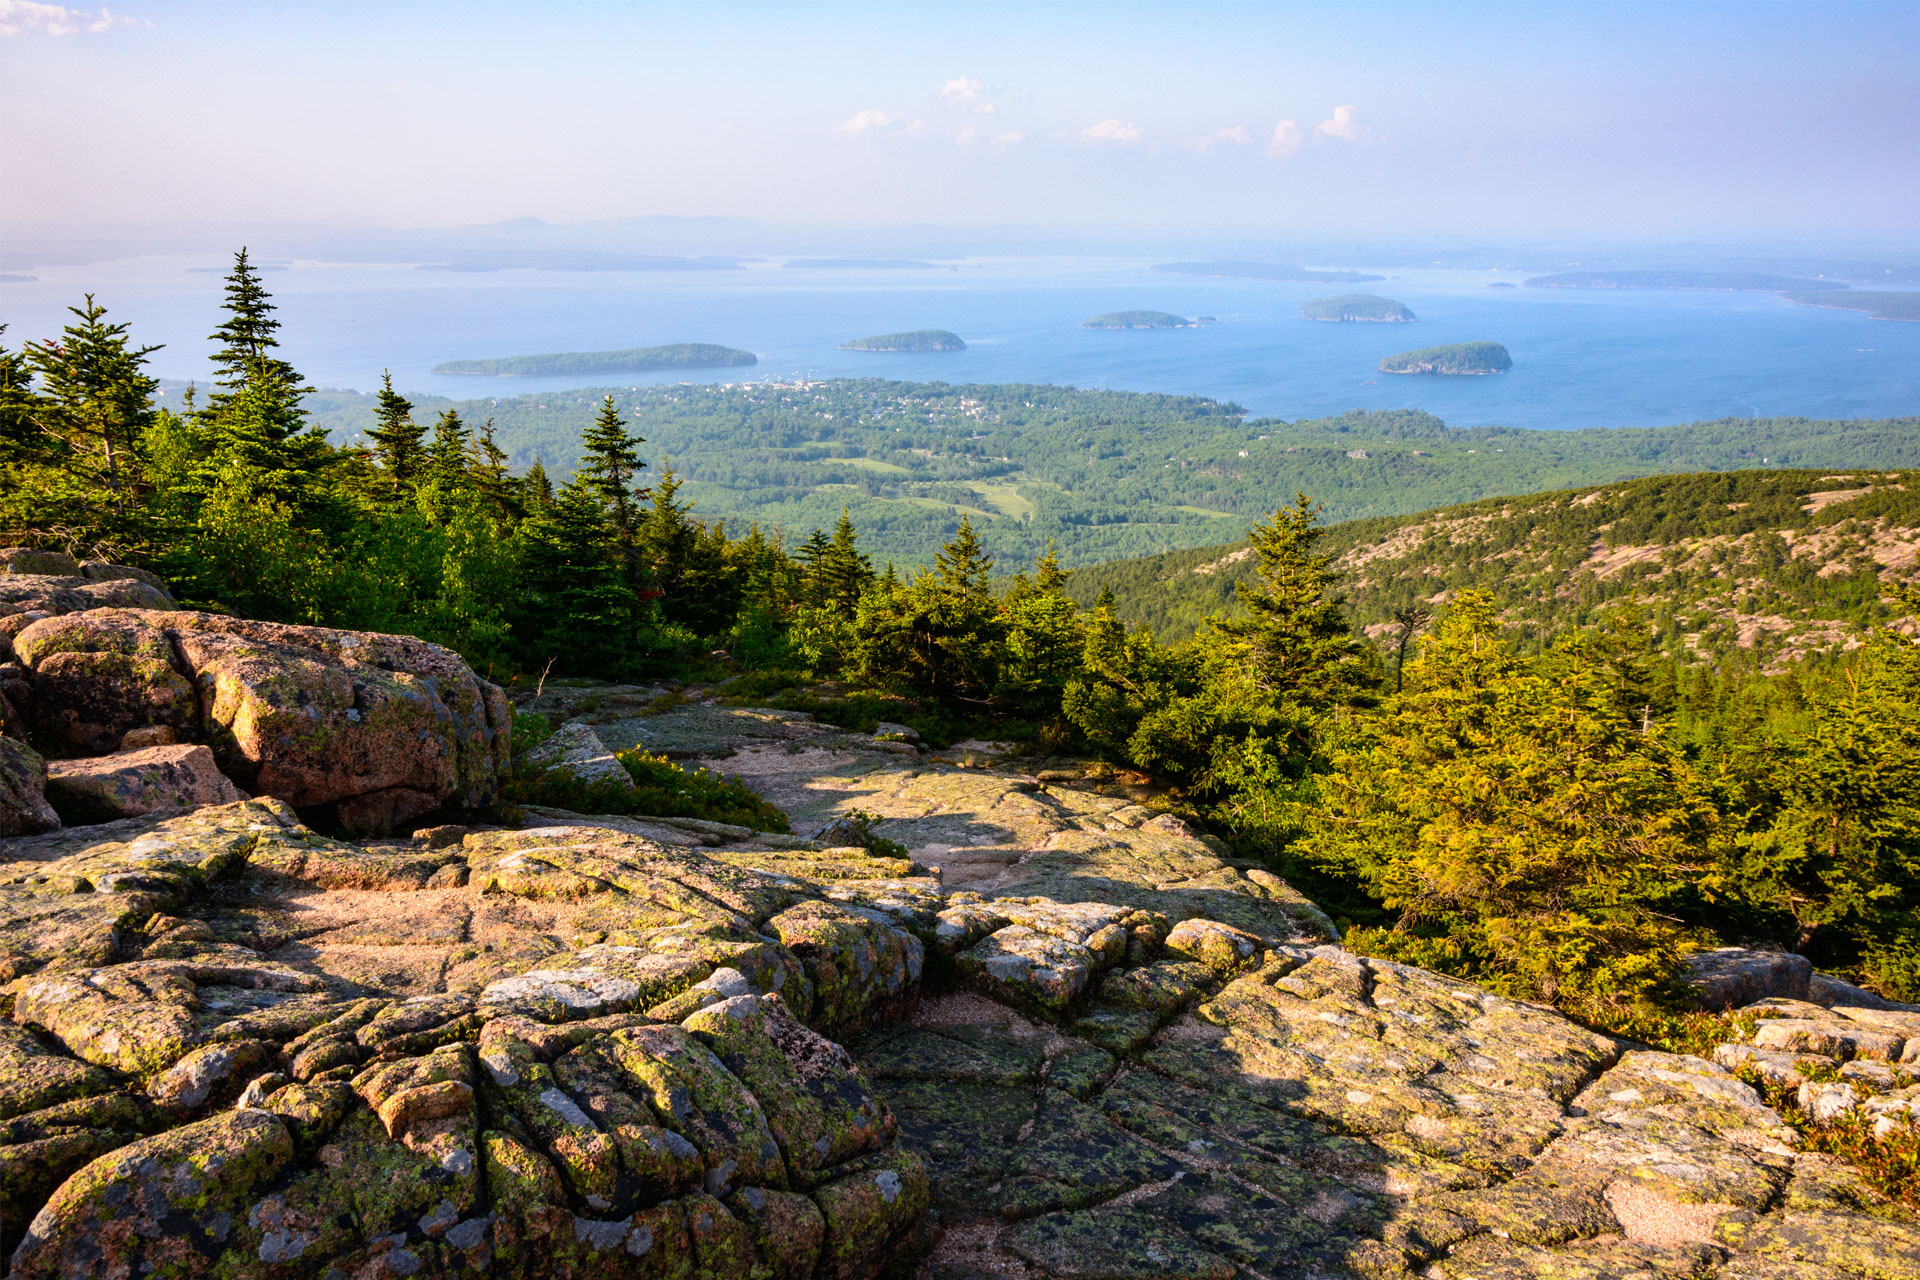 Acadia National Park; Courtesy of Zack Frank/Shutterstock.com